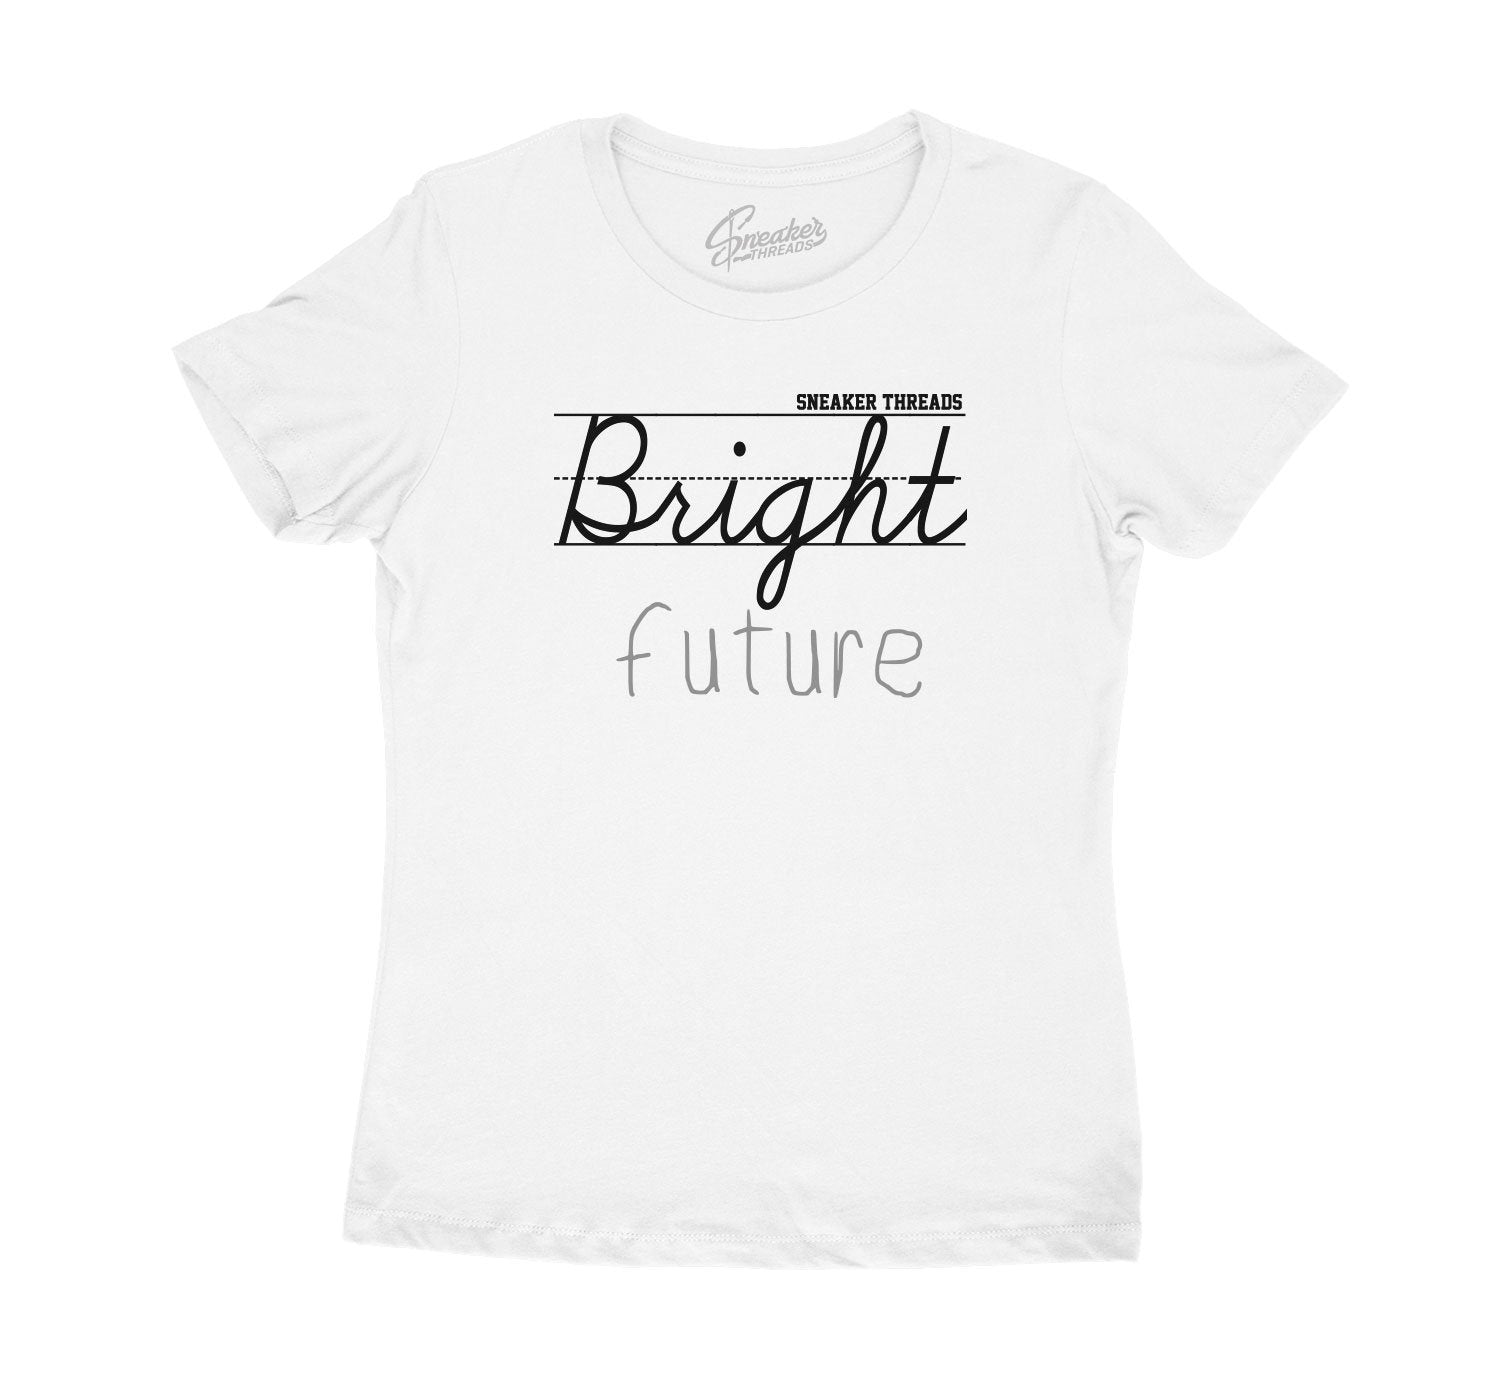 girls shirt collectionn designed to match the Jordan 11 metallic silver collection